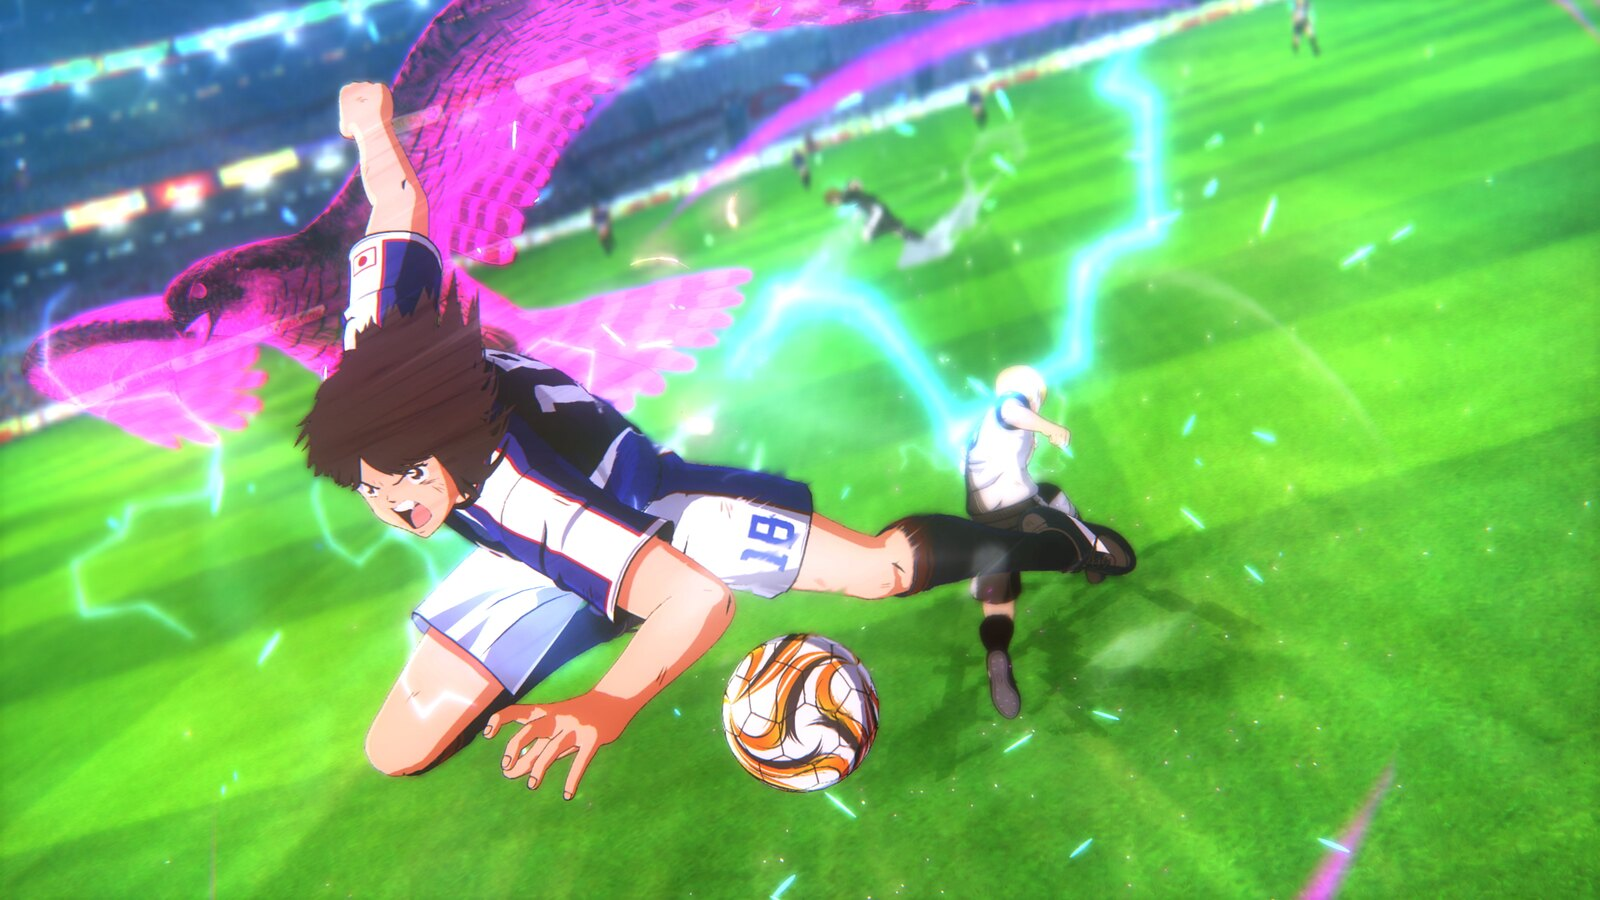 49434195463 7ec36ed097 h - Captain Tsubasa: Rise of new Champions bringt Arcade-Action ins Wohnzimmer